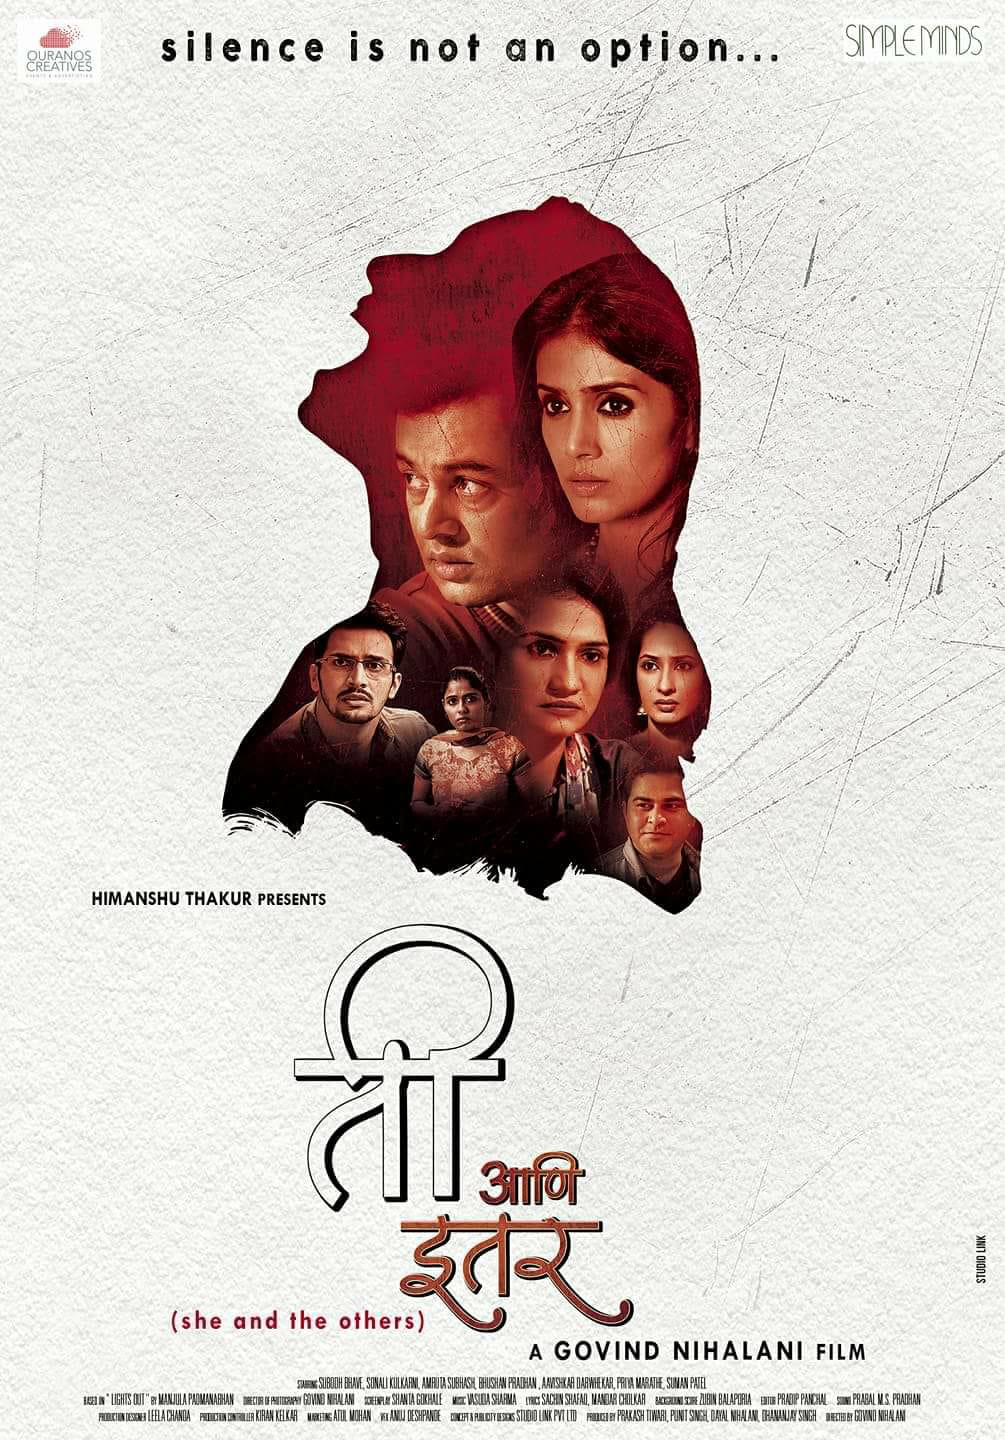 Ti Aani Itar Marathi Movie Poster